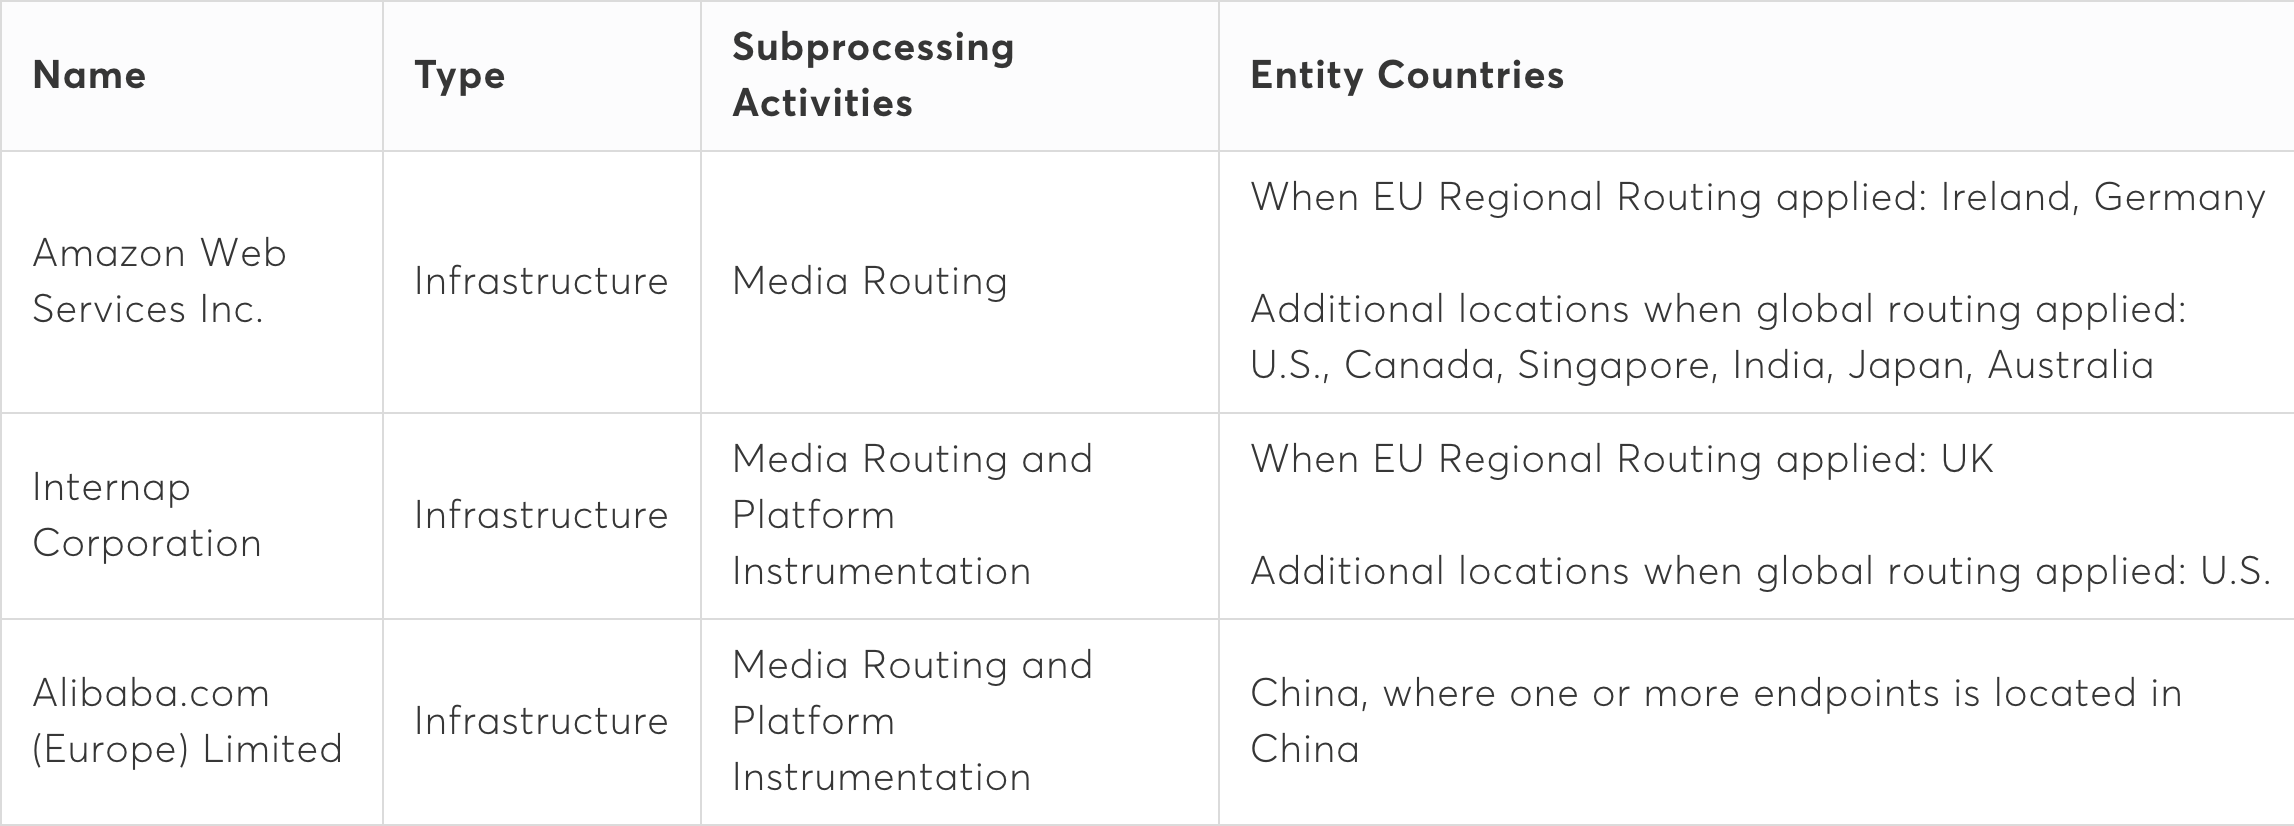 "A table shows the name of all Vonage Video API sub-processors, with details for designating ""Type"", ""Subprocessing Activities"", and ""Entity Countries"" for each. Amazon Web Services. Infrastructure, Media Routing, Ireland and Germany (when EU Regional Routing is applied) and additionally the United States Canada Singapore India Japan and Australia (when global routing is applied). Intercap Corporation. Infrastructure, Media Routing and Platform Instrumentation, United Kingdom (when EU Regional Routing is applied) and additionally the United States (when global routing is applied). Alibaba.com (Europe) Limited. Infrastructure, Media Routing and Platform Instrumentation, China (where one of more endpoints is located in China.)"